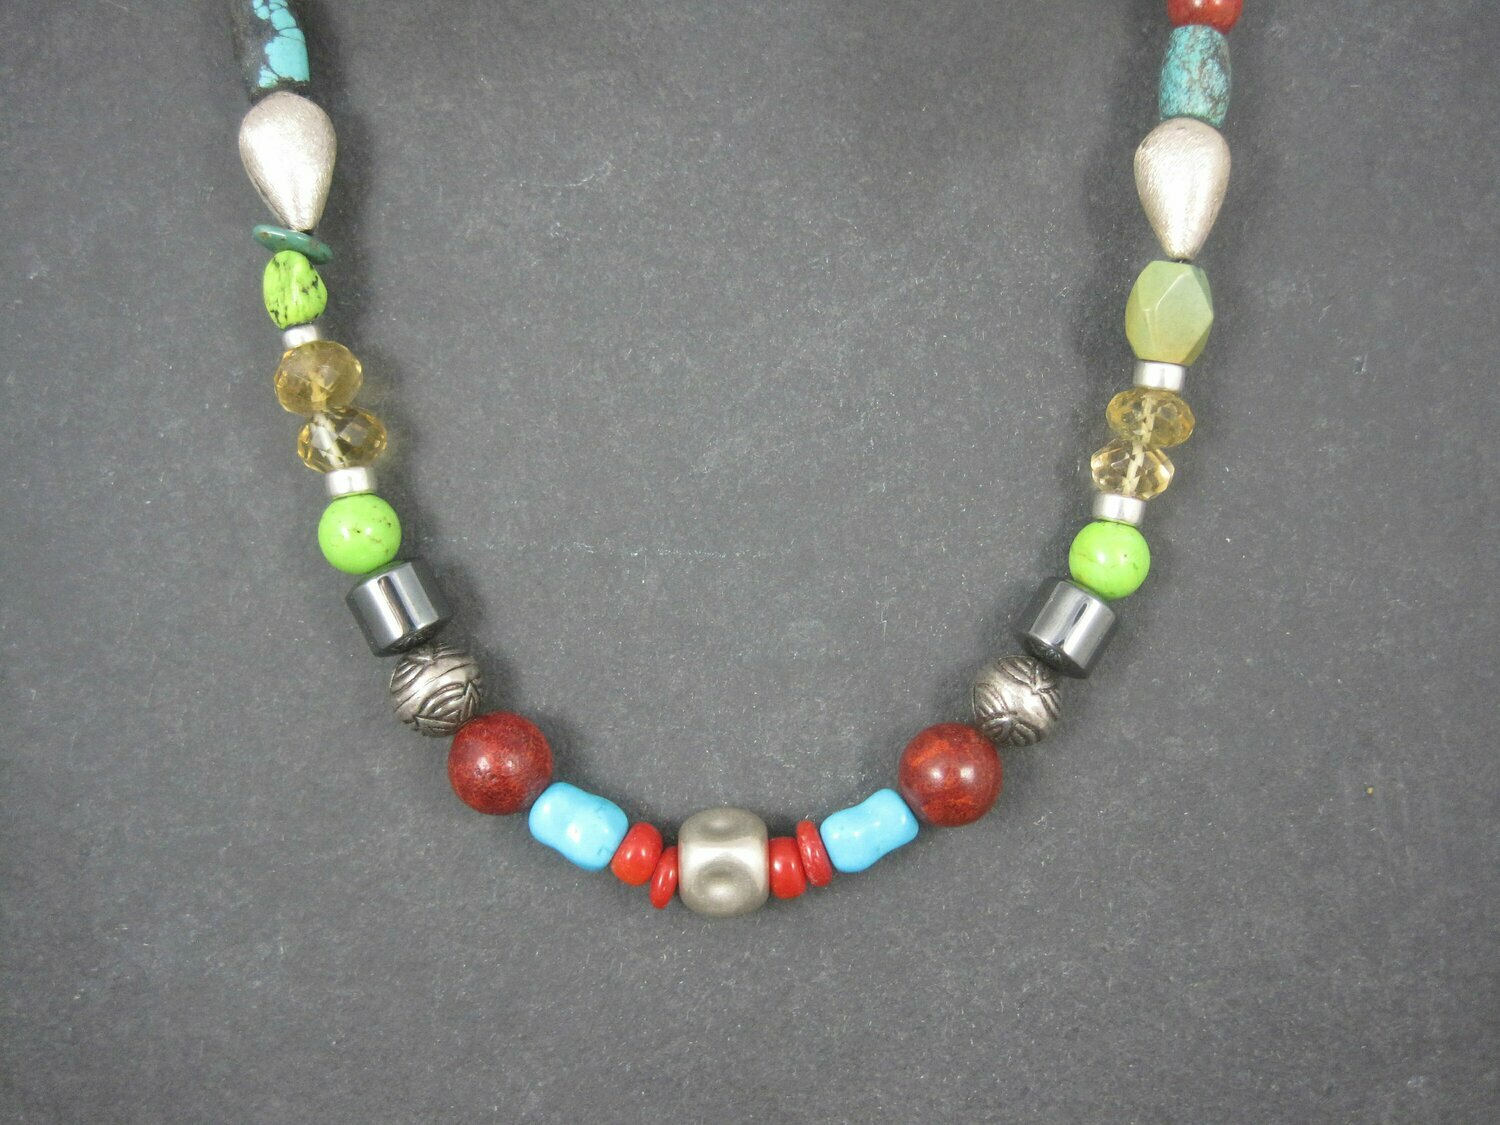 Vintage Southwestern Turquoise Bead Necklace 17.5 Inches